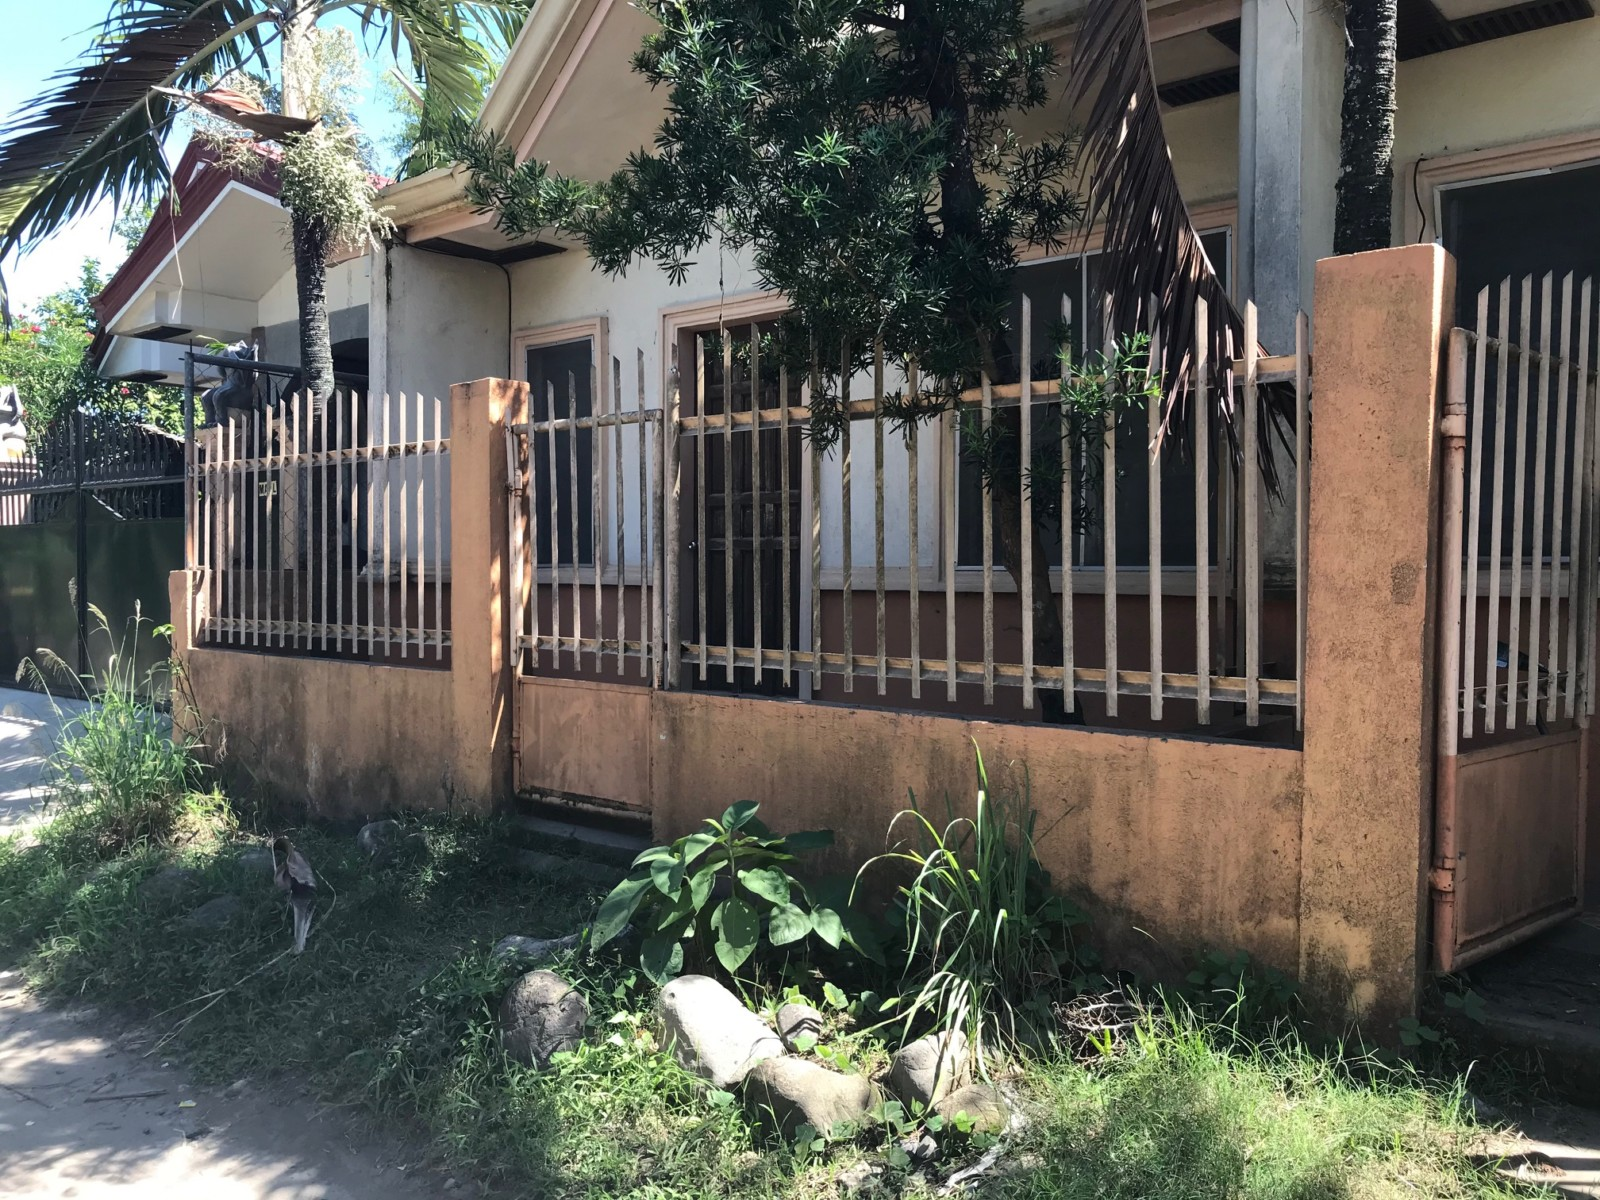 Apartment Building For Sale In Dumaguete – ID#14701